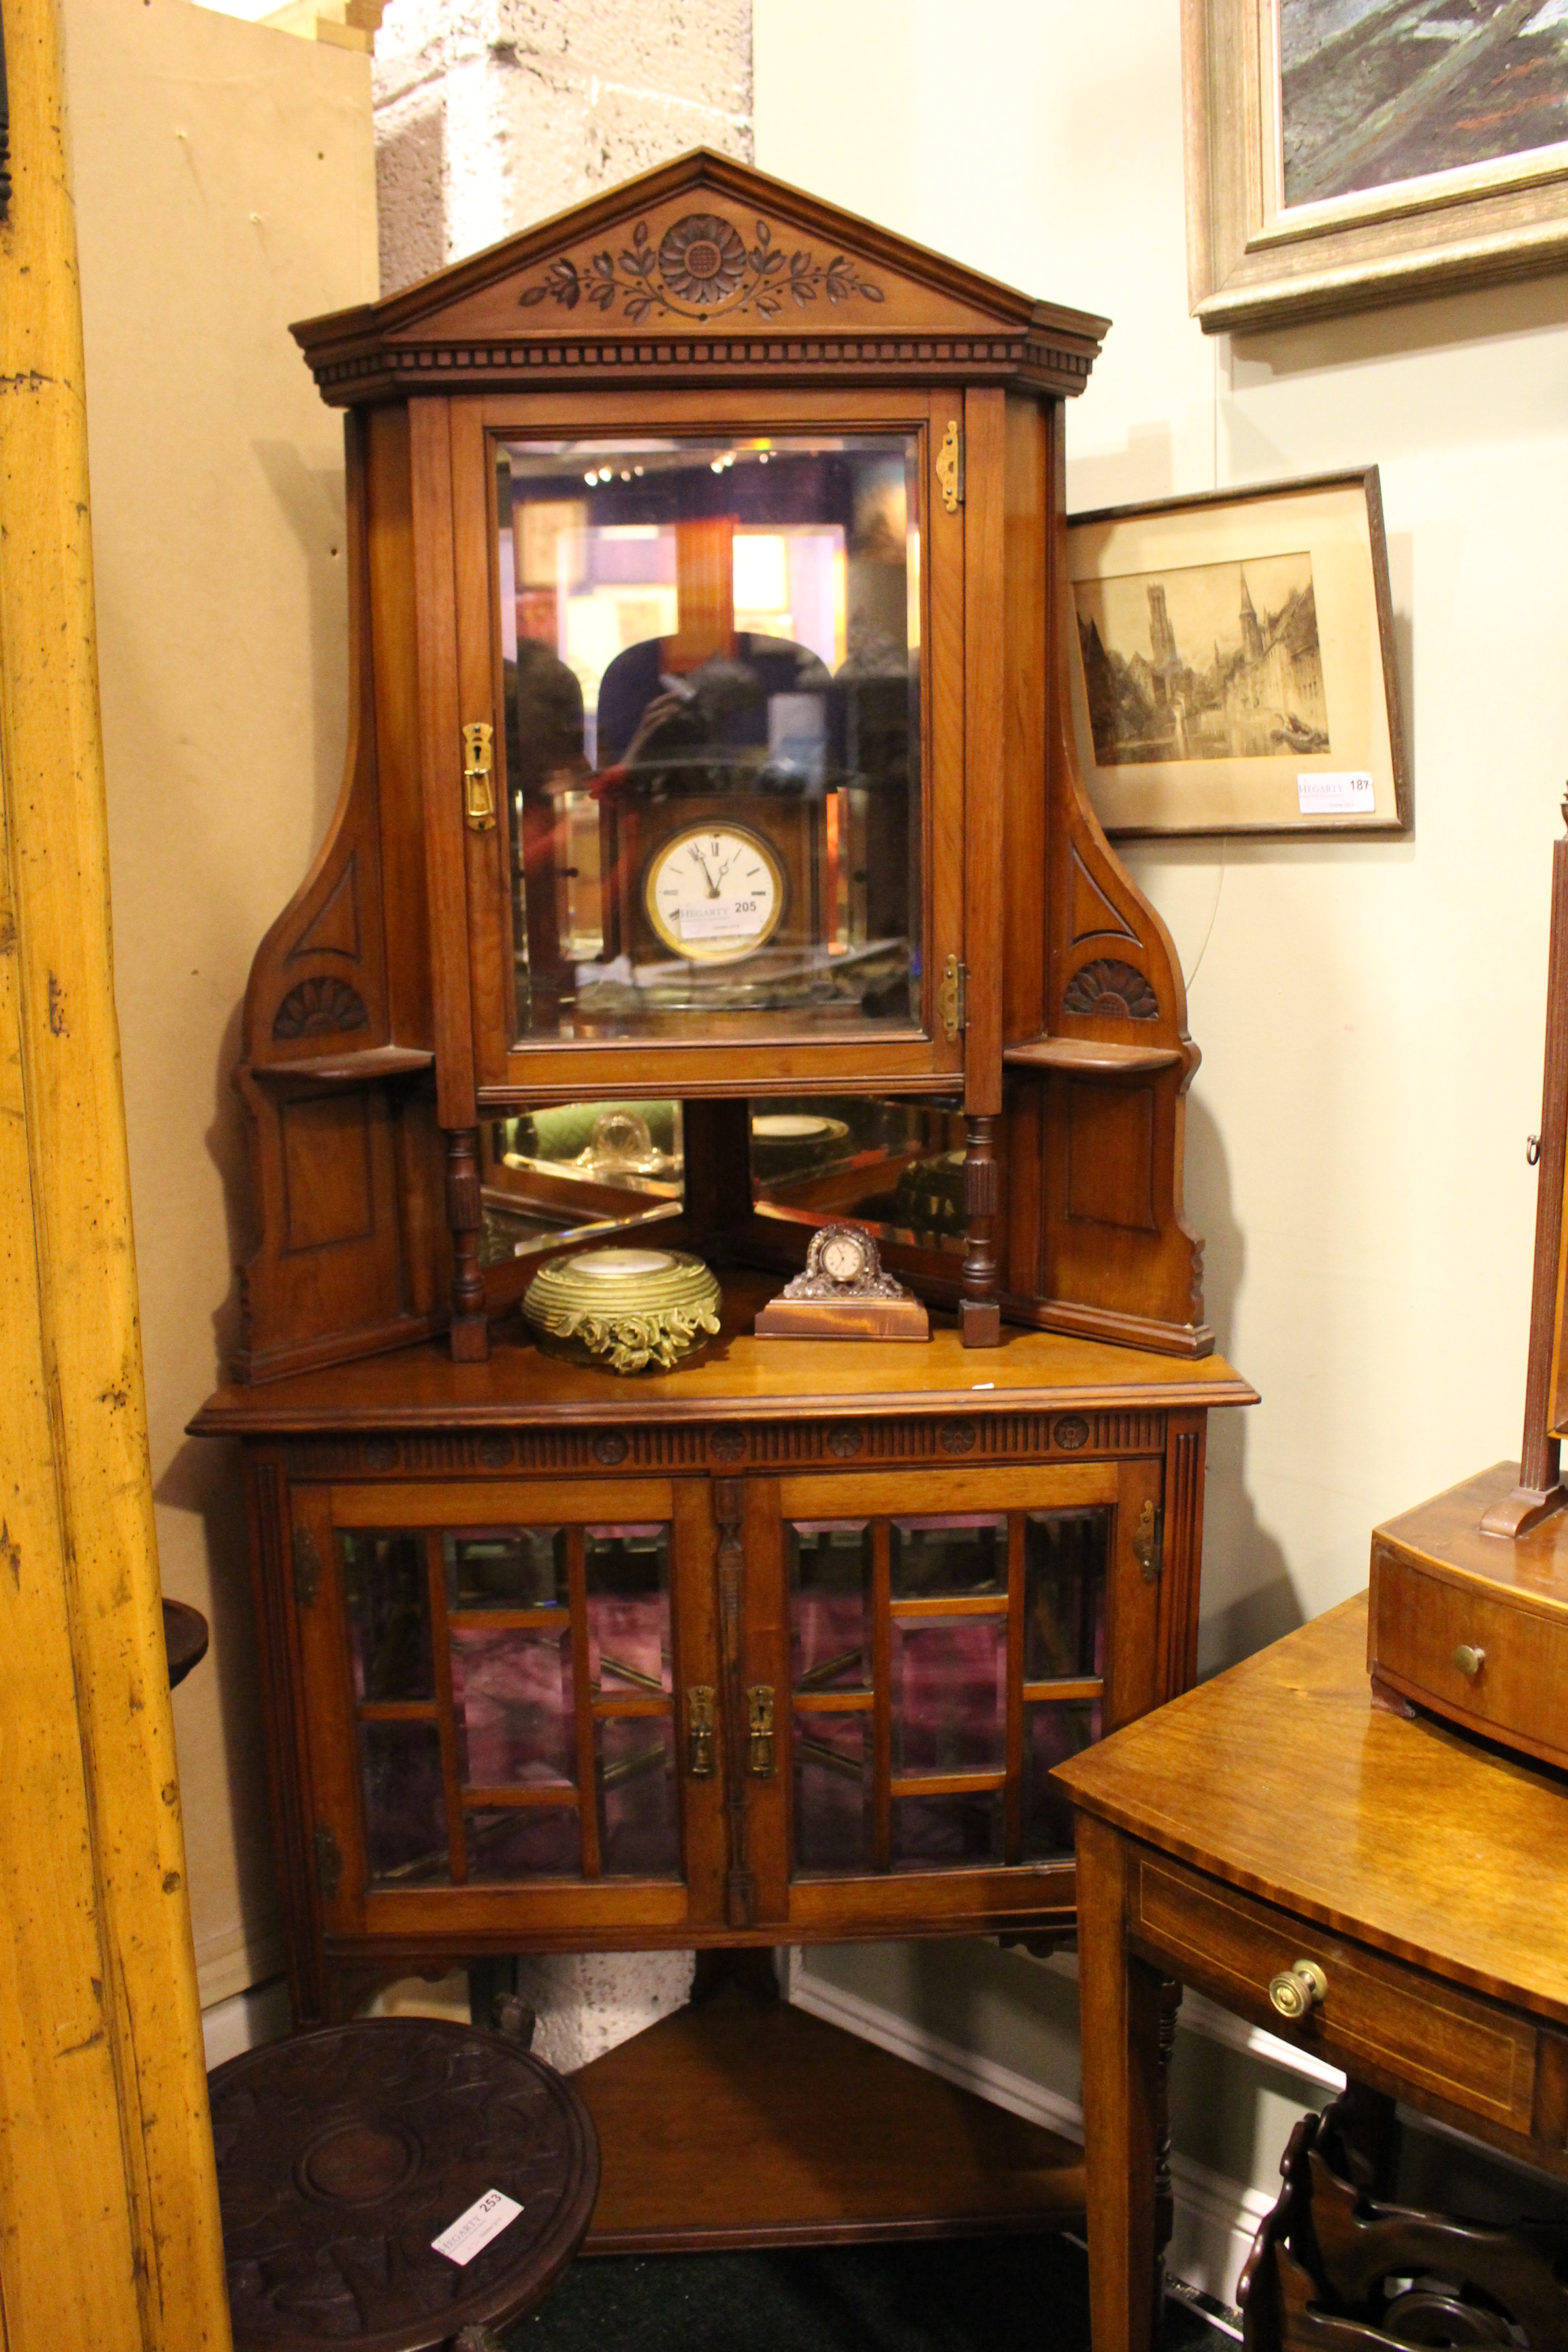 Lot 13 - A VERY FINE EARLY 20TH CENTURY WALNUT CORNER CABINET, with bevelled glazed cabinet over 2 door